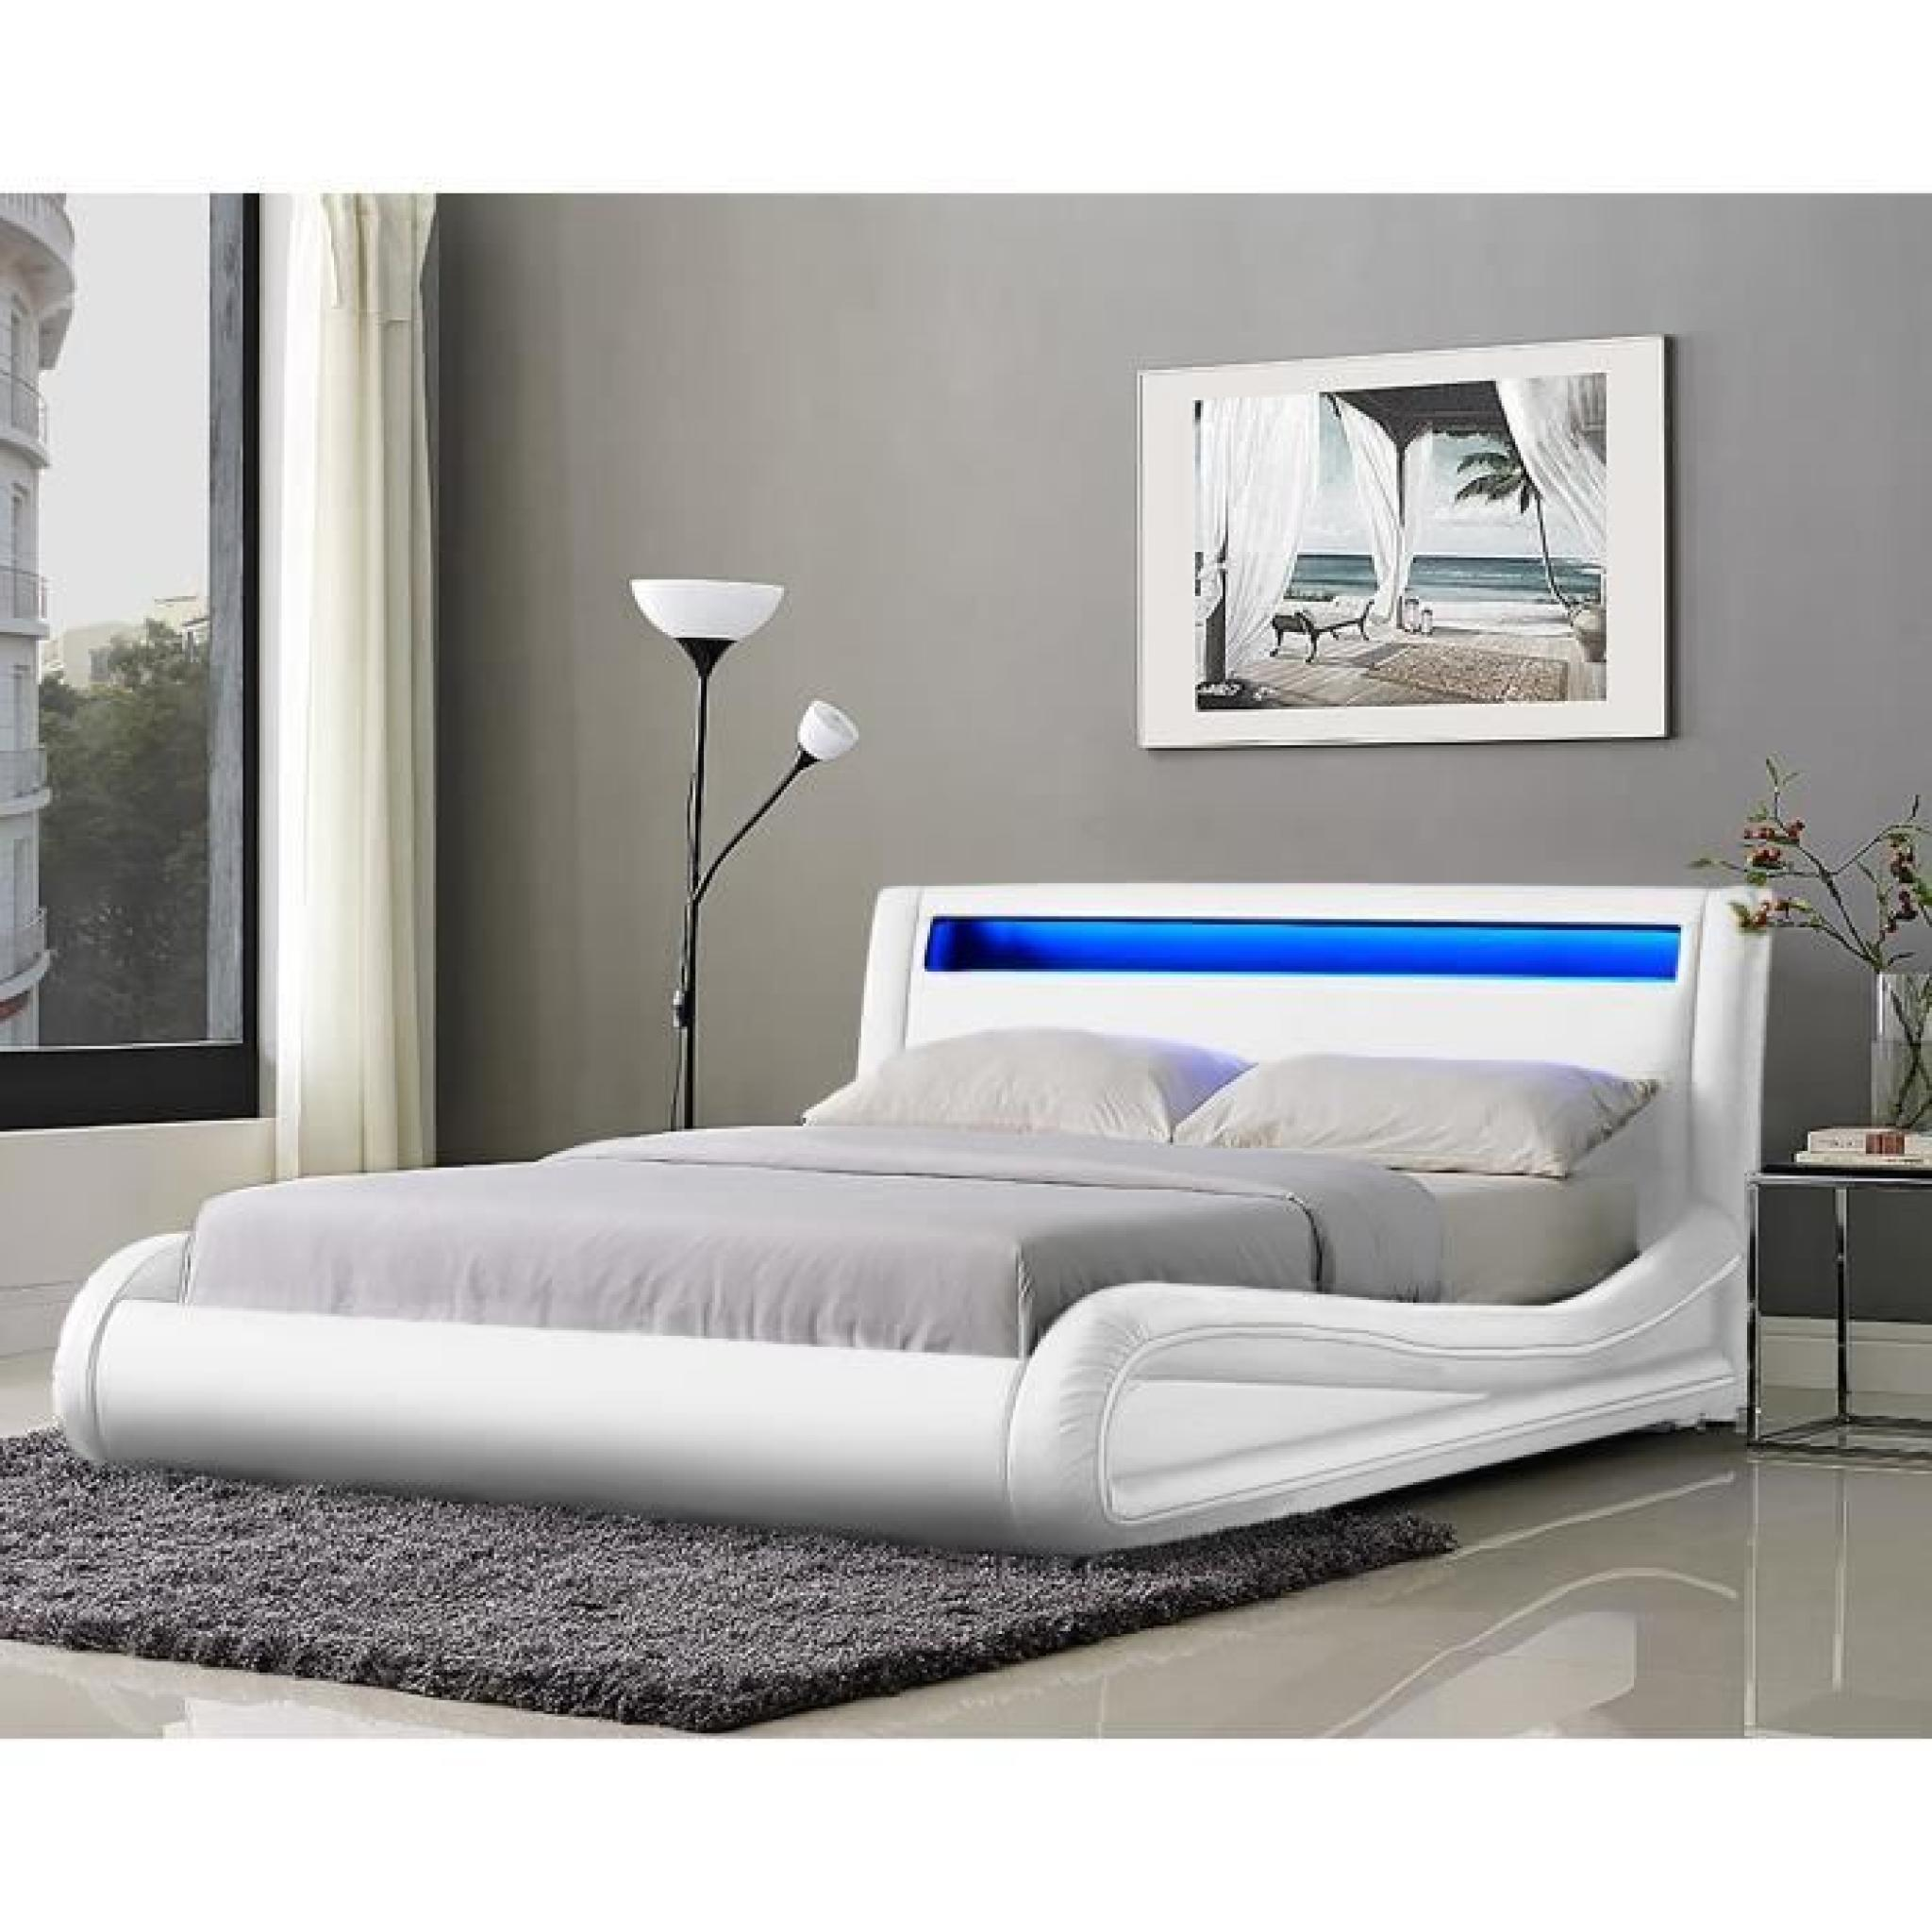 Neptune lit adulte avec led 140x190cm blanc sommier for Lit adulte avec commode